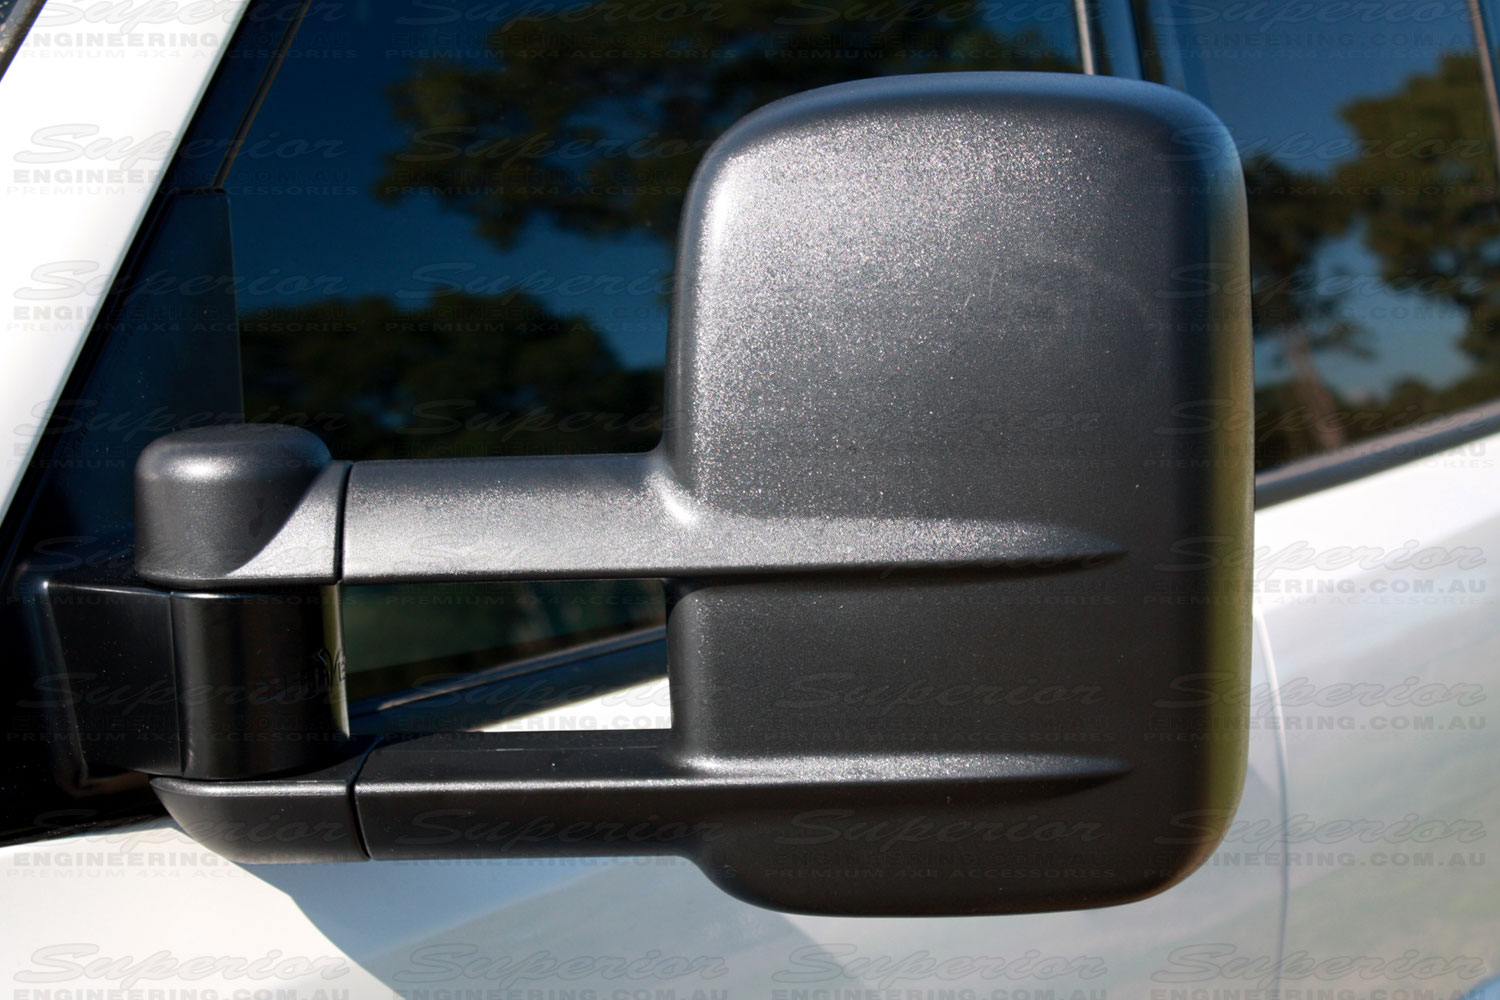 Closeup view of black Clearview Towing Mirror fitted to a late model Pajero